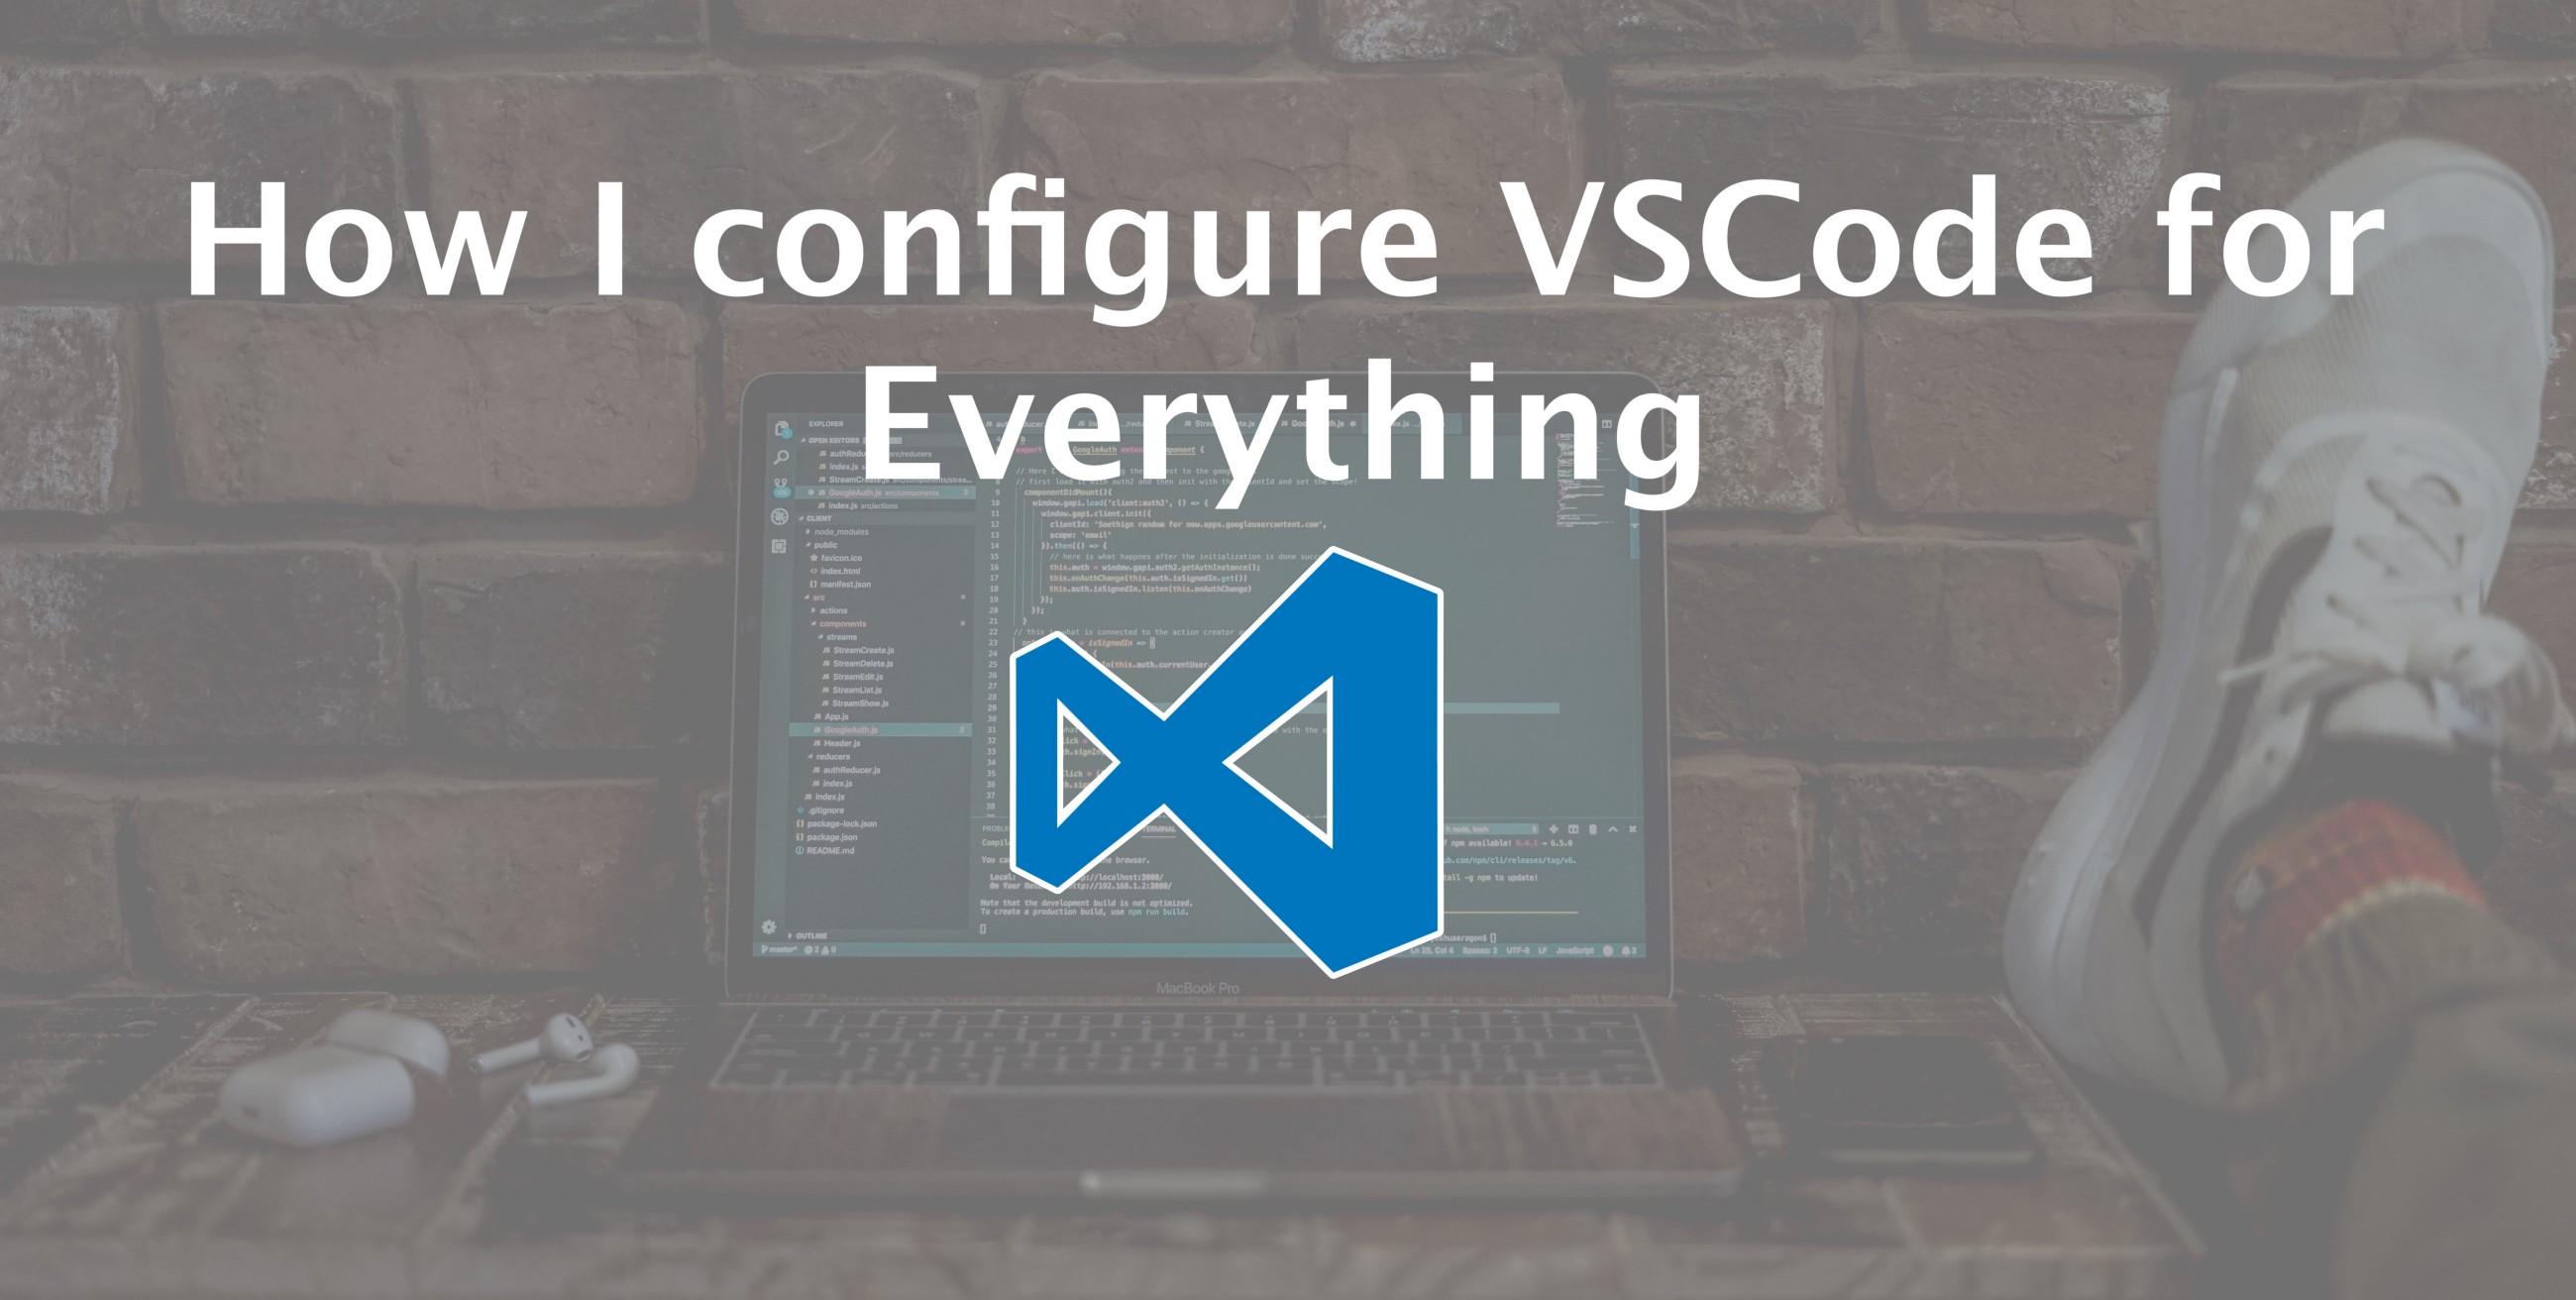 /how-i-configure-vscode-for-everything-7df65a316a52 feature image